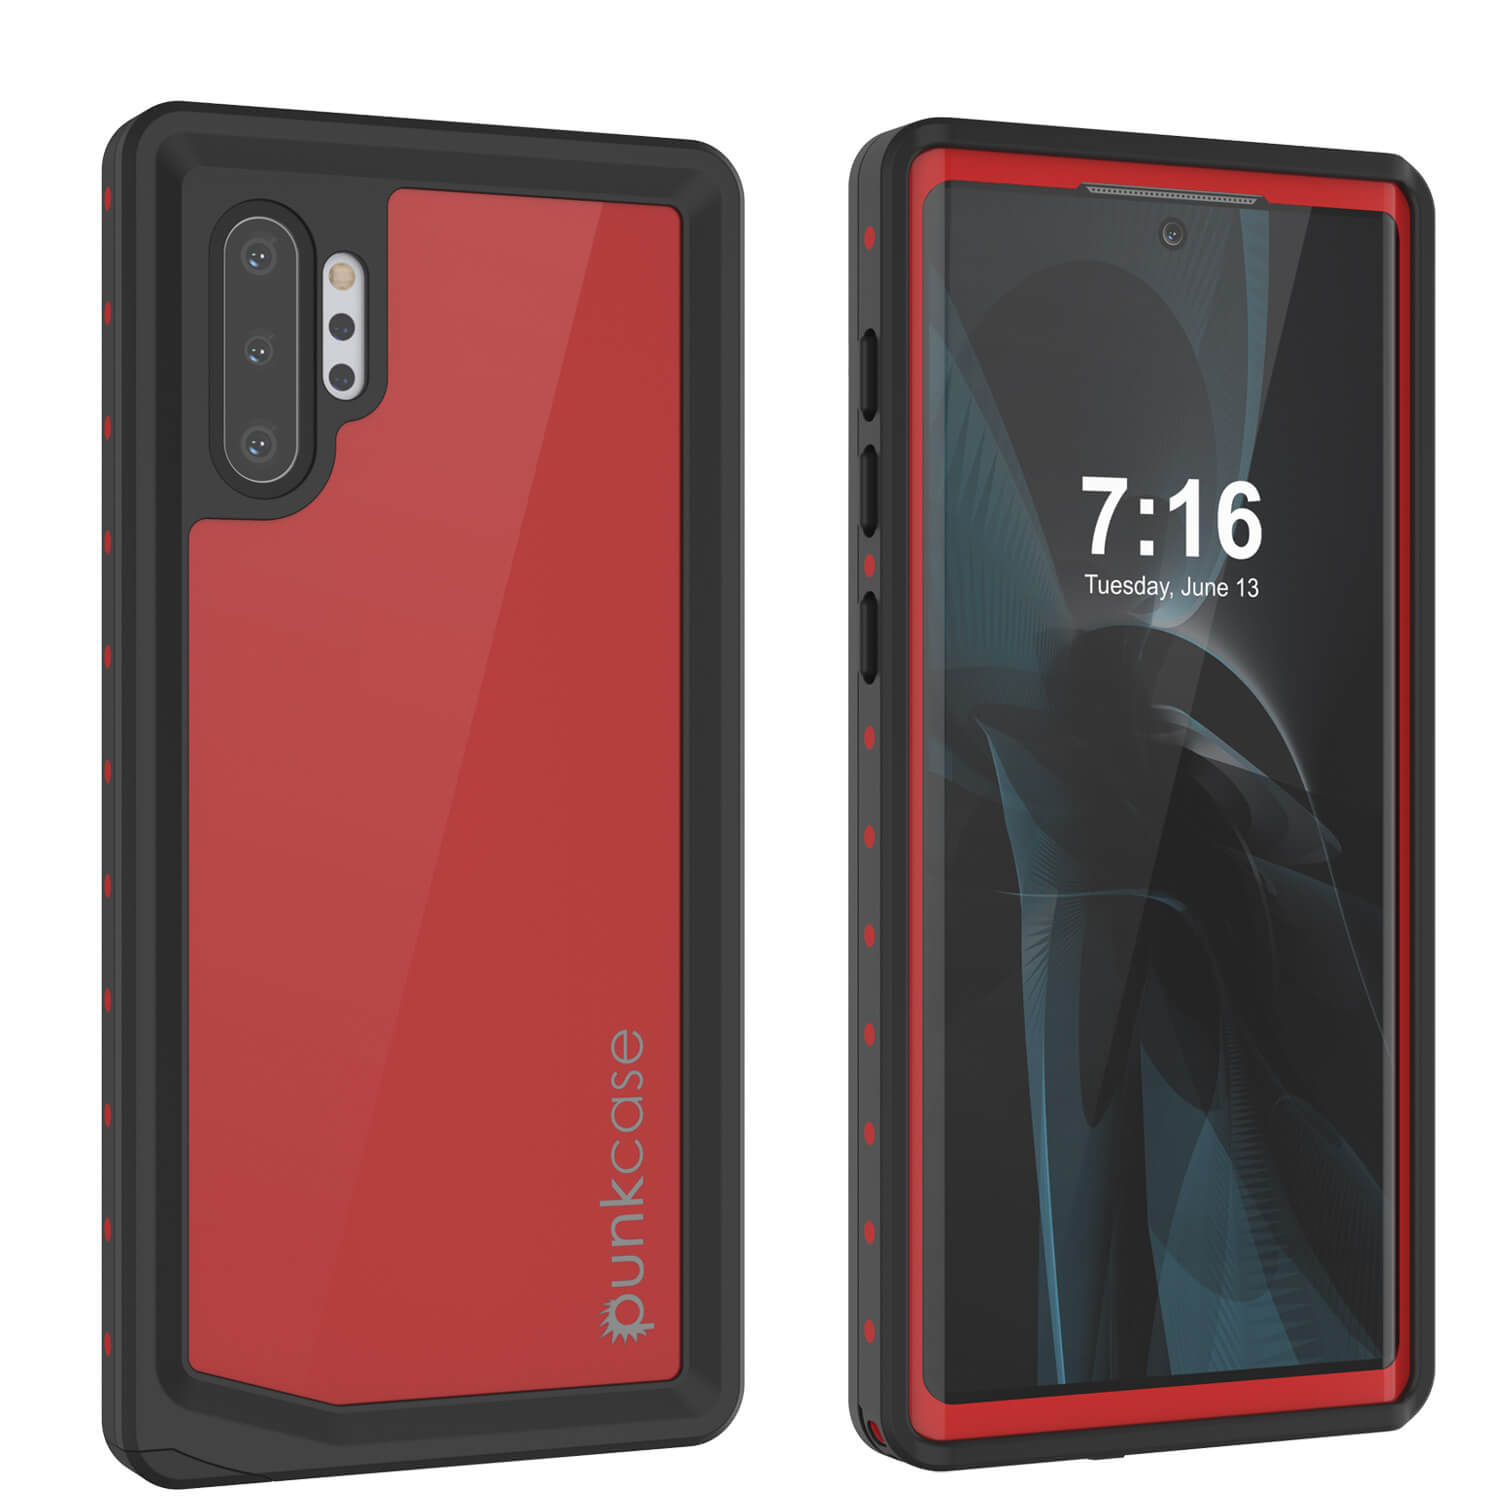 Galaxy Note 10+ Plus Waterproof Case, Punkcase Studstar Red Series Thin Armor Cover